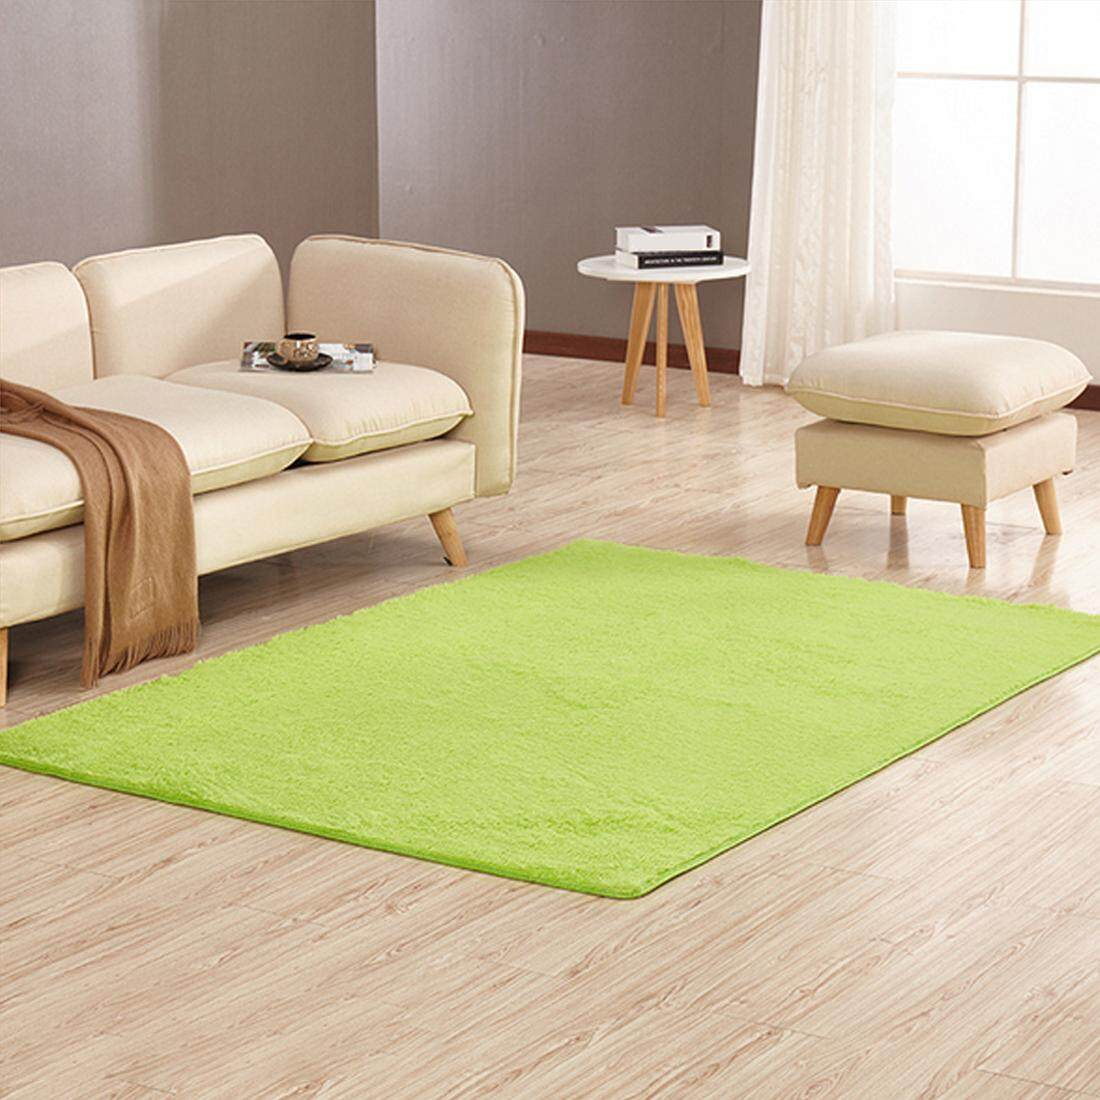 Shaggy Fluffy Area Rug Soft Floor Mat Anti-skid Carpet 160*200cm - intl